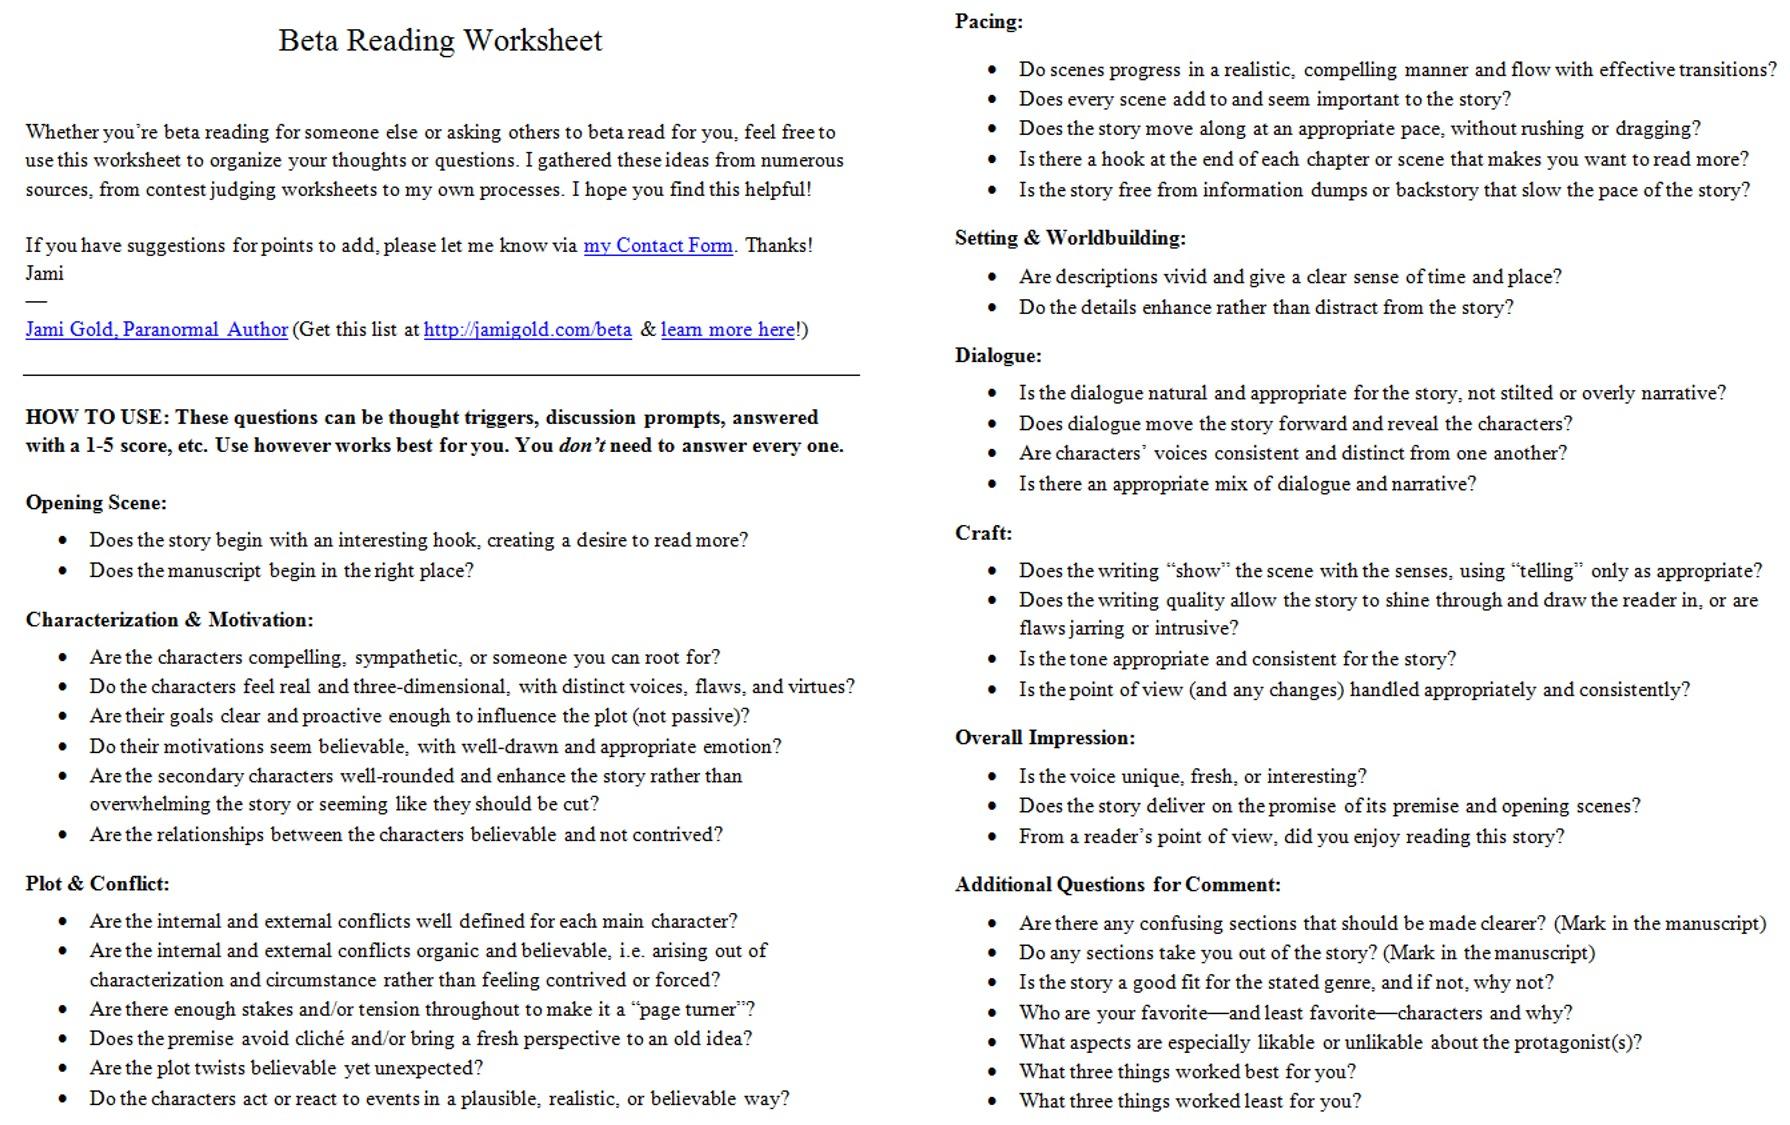 Proatmealus  Terrific Worksheets For Writers  Jami Gold Paranormal Author With Exciting Screen Shot Of The Twopage Beta Reading Worksheet With Archaic Chapter  Worksheet  Balancing Chemical Equations Also Geometry Proofs Worksheet In Addition Angles Formed By Parallel Lines And Transversals Worksheet And Career Exploration Worksheet As Well As Factors Of Production Worksheet Additionally Solving Quadratics Worksheet From Jamigoldcom With Proatmealus  Exciting Worksheets For Writers  Jami Gold Paranormal Author With Archaic Screen Shot Of The Twopage Beta Reading Worksheet And Terrific Chapter  Worksheet  Balancing Chemical Equations Also Geometry Proofs Worksheet In Addition Angles Formed By Parallel Lines And Transversals Worksheet From Jamigoldcom